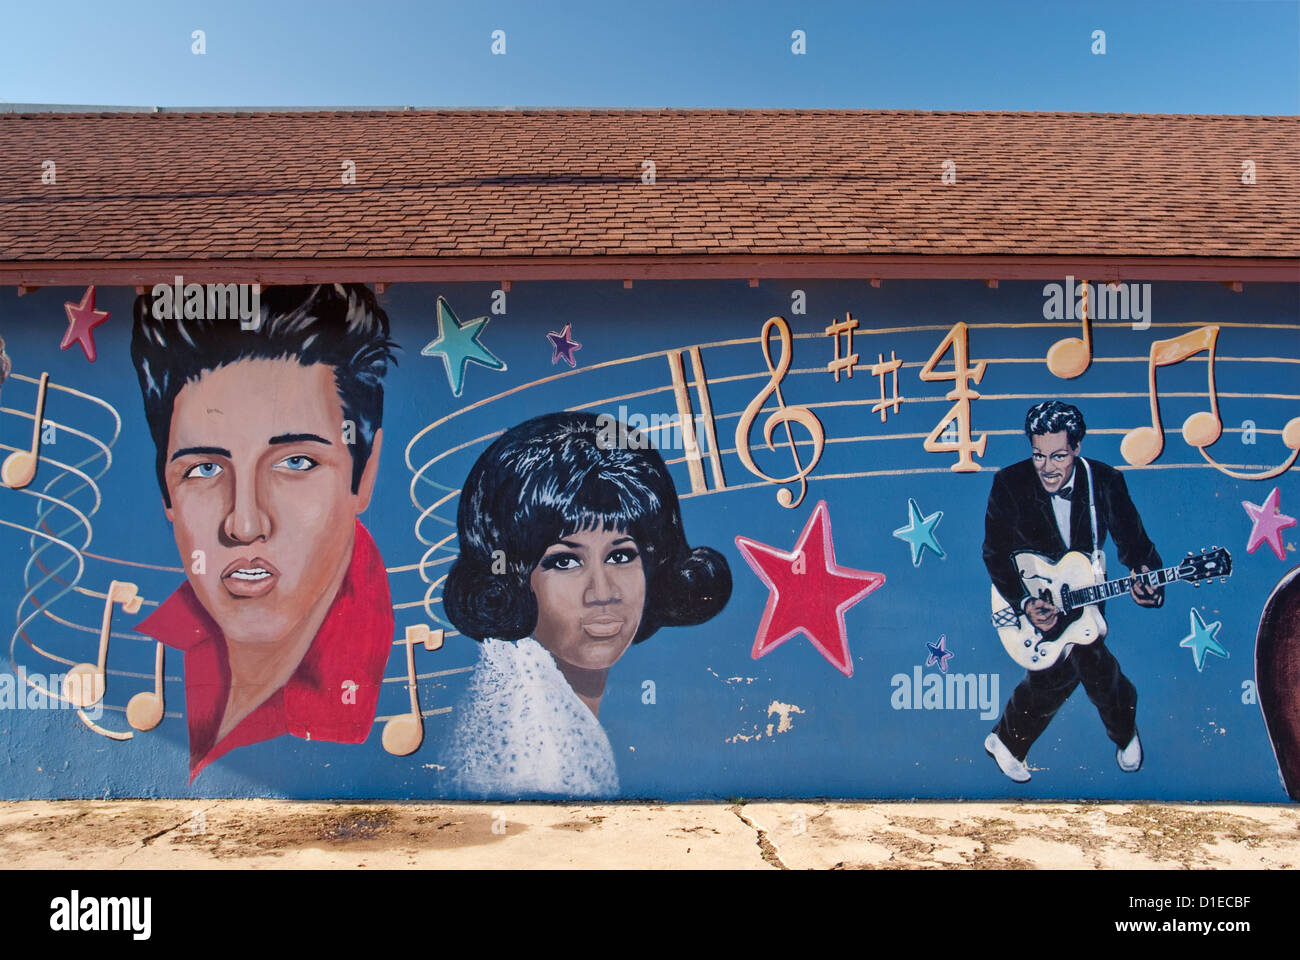 Elvis Presley, Aretha Franklin e Chuck Berry, murale in Clovis in Great Plains area del Nuovo Messico, STATI UNITI D'AMERICA Foto Stock